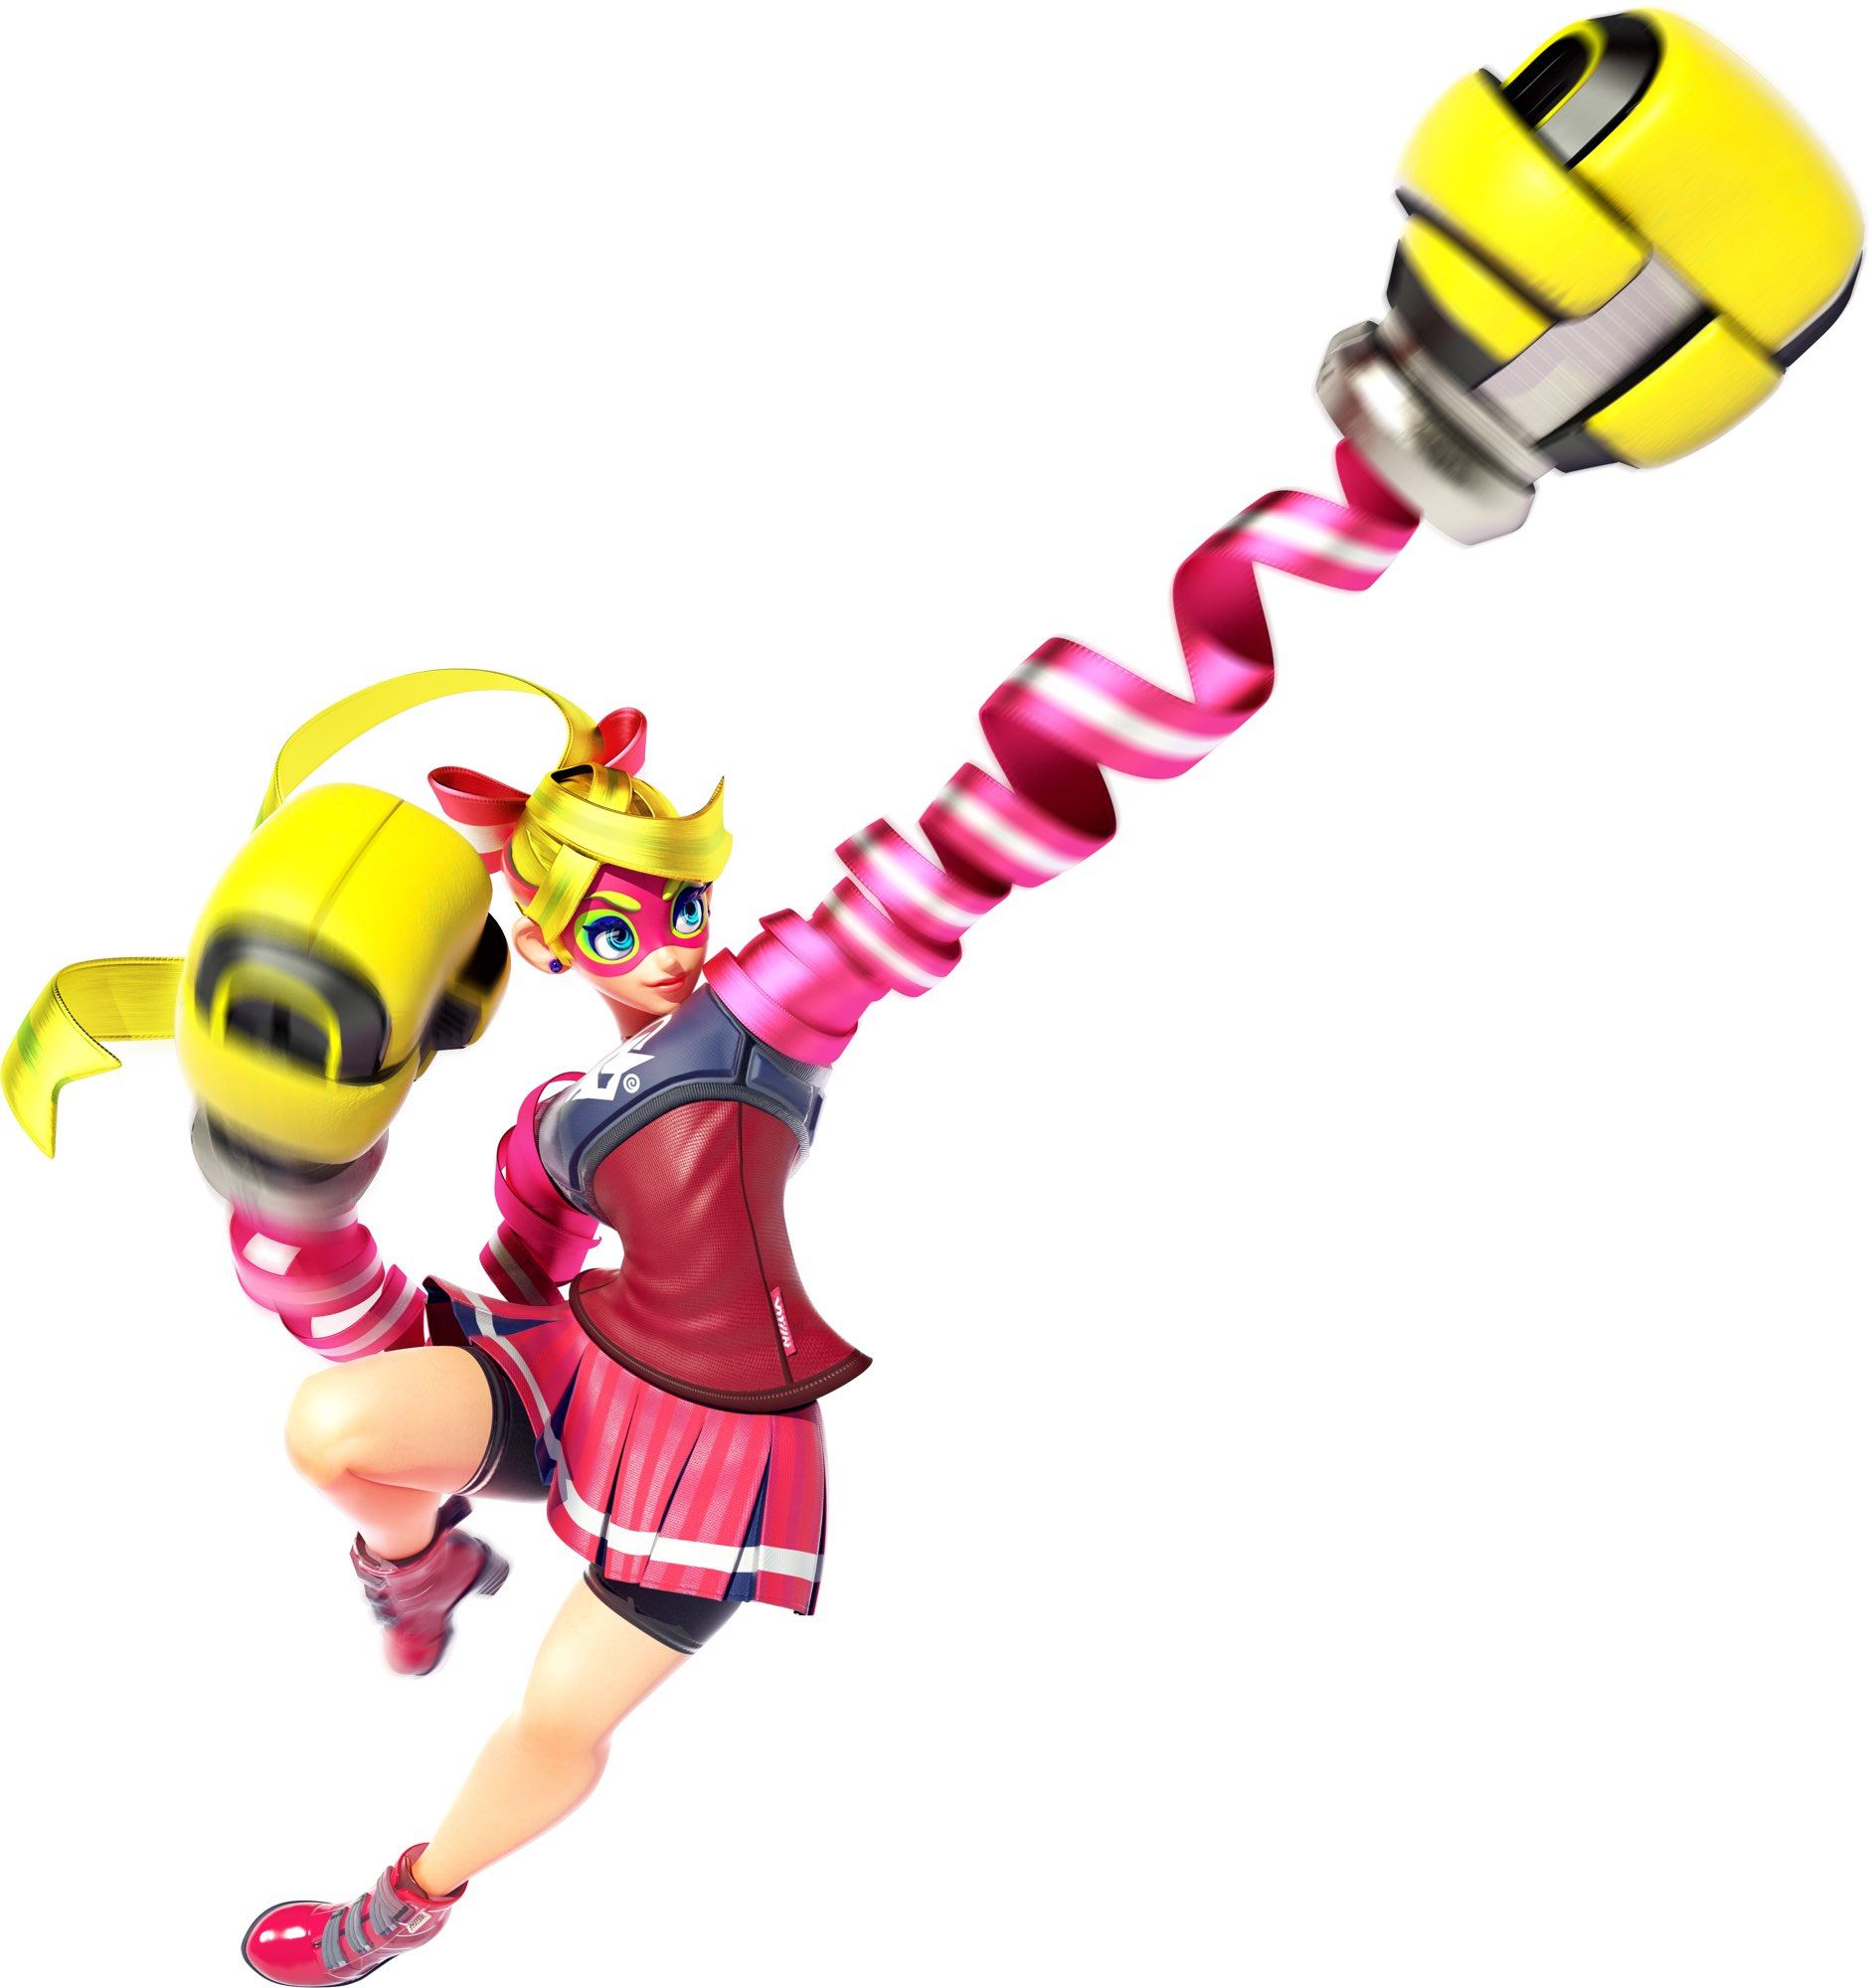 Switch_ARMS_characterart_02_png_jpgcopy